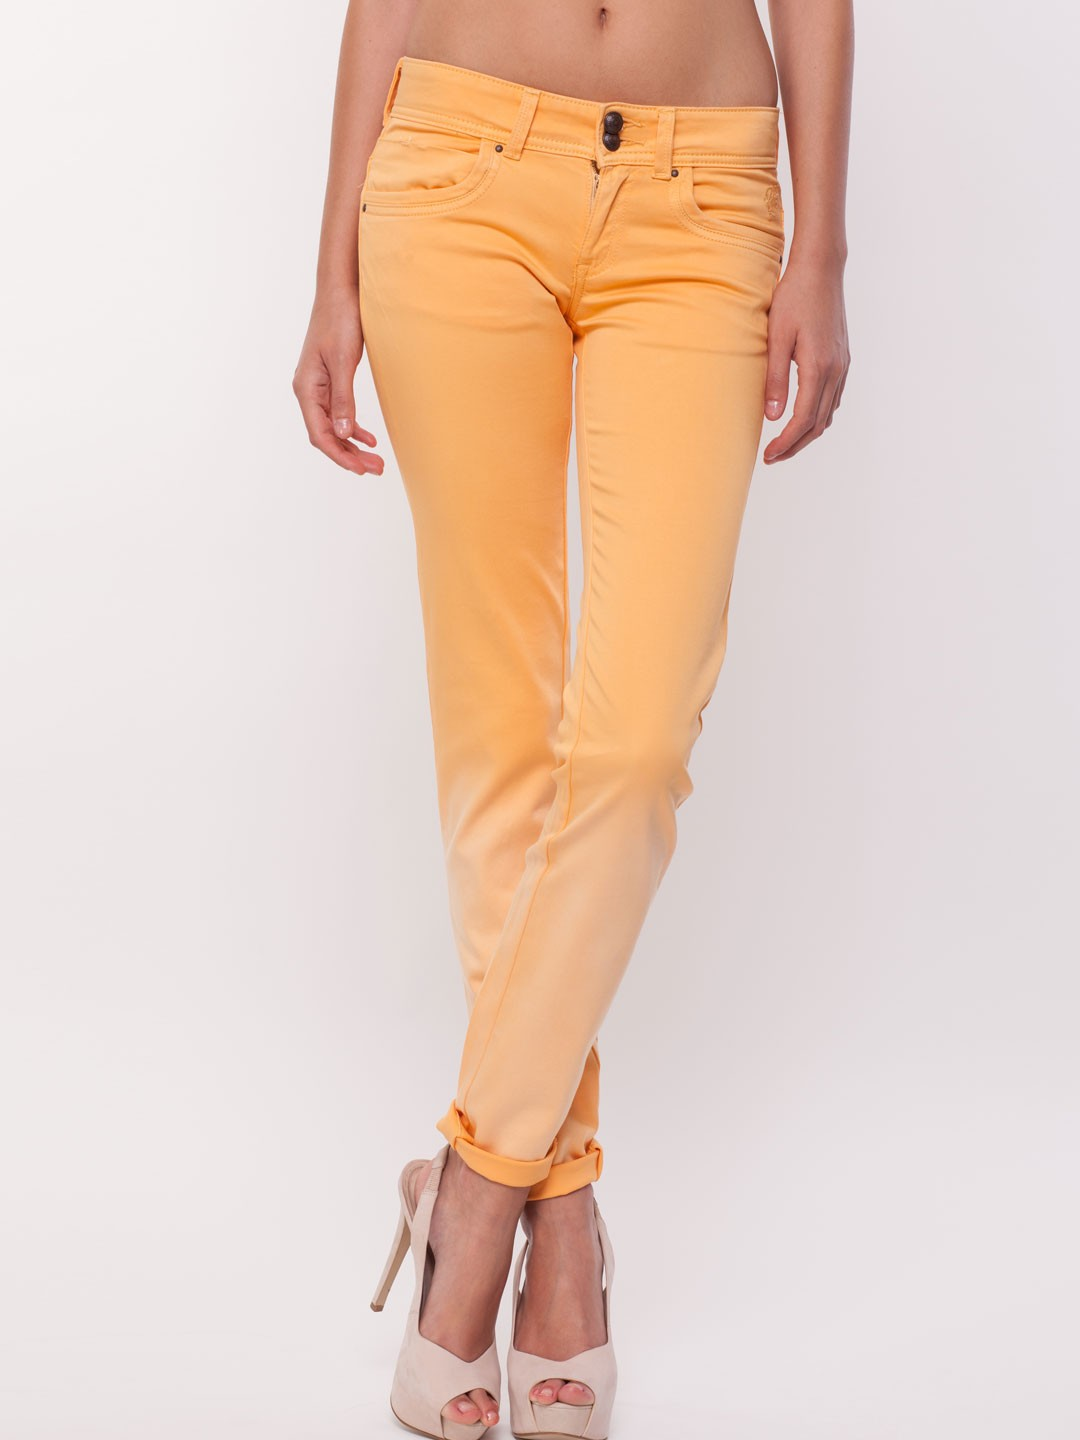 Find great deals on eBay for Yellow Pants Mens in Pants for Men. Shop with confidence.